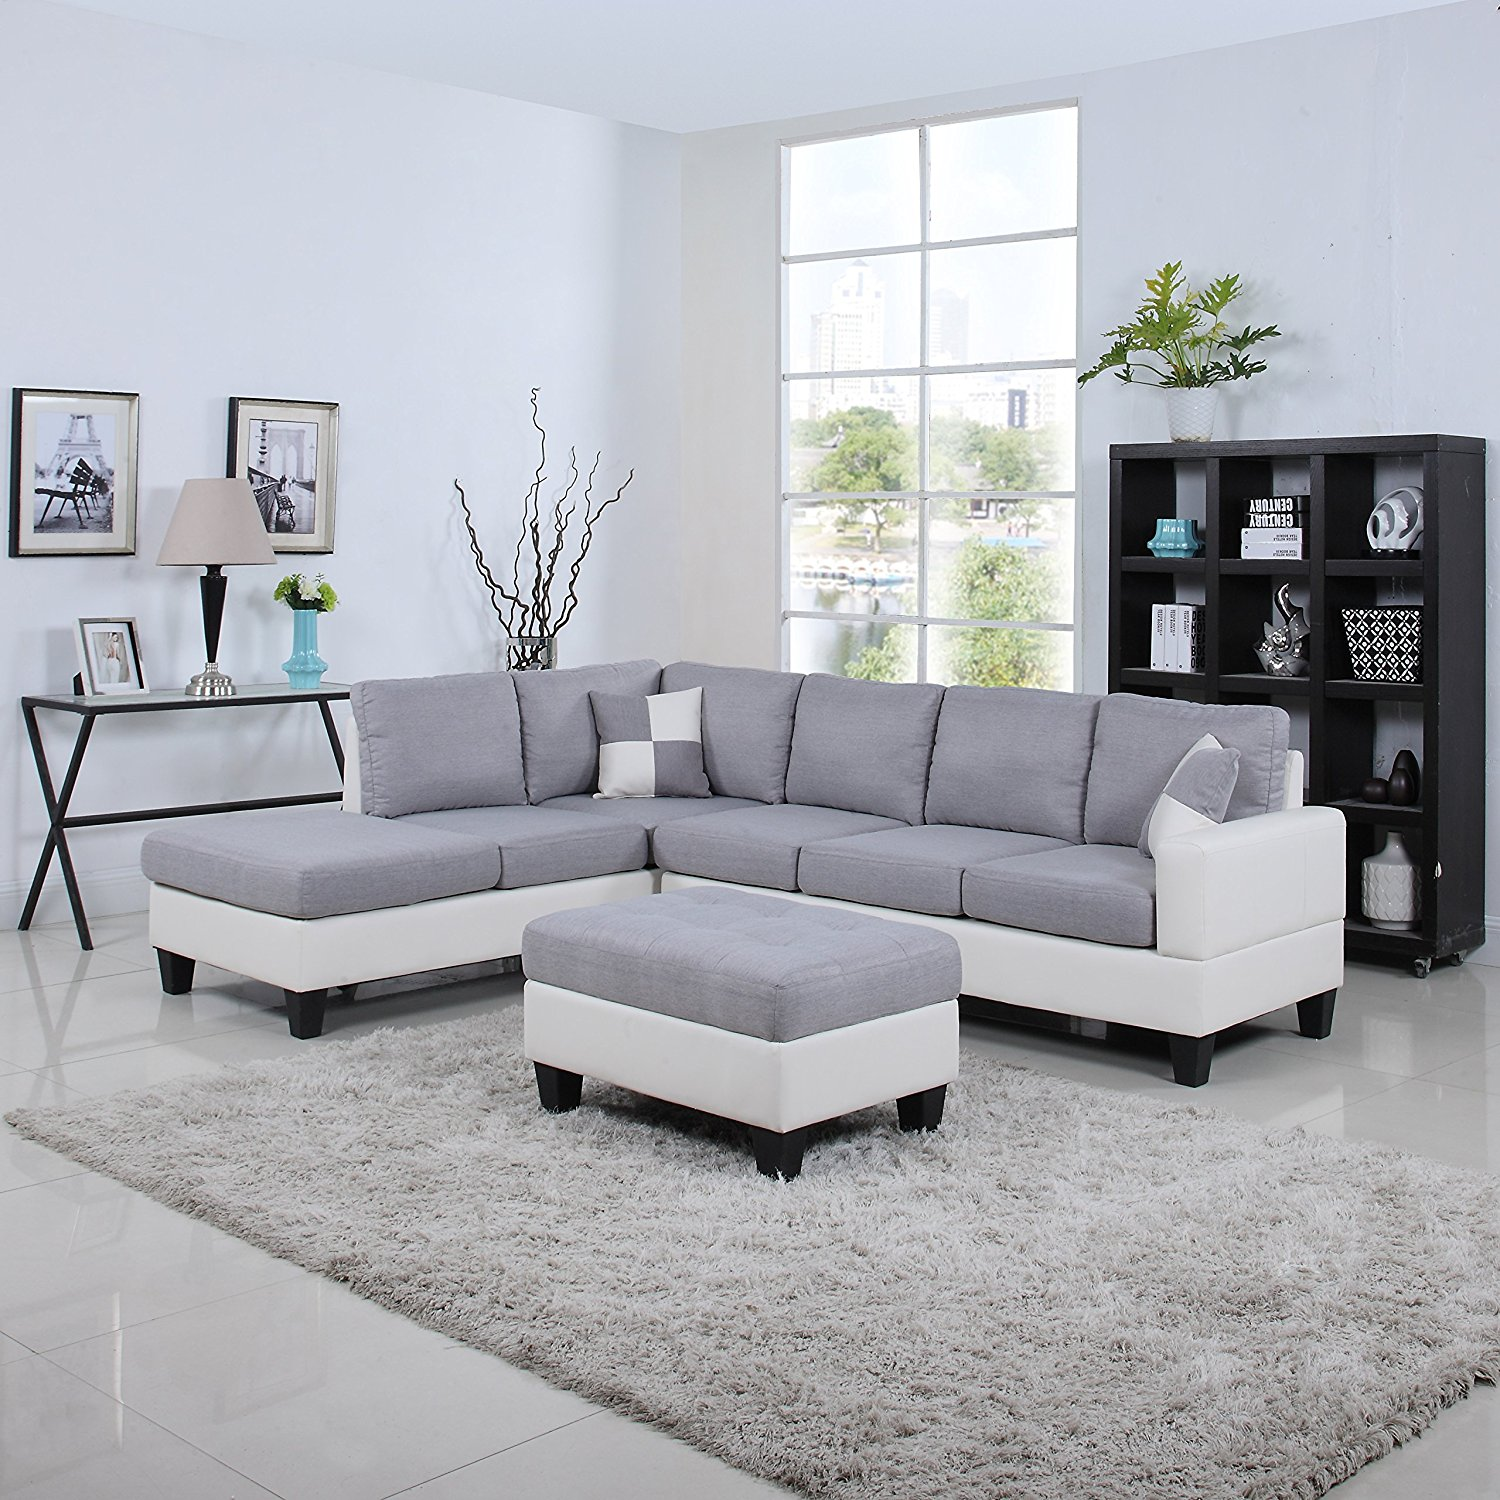 Cheap Sofa Sets: 35+ Jawdroppingly Cheap Sofa Sets You Must Before Buying